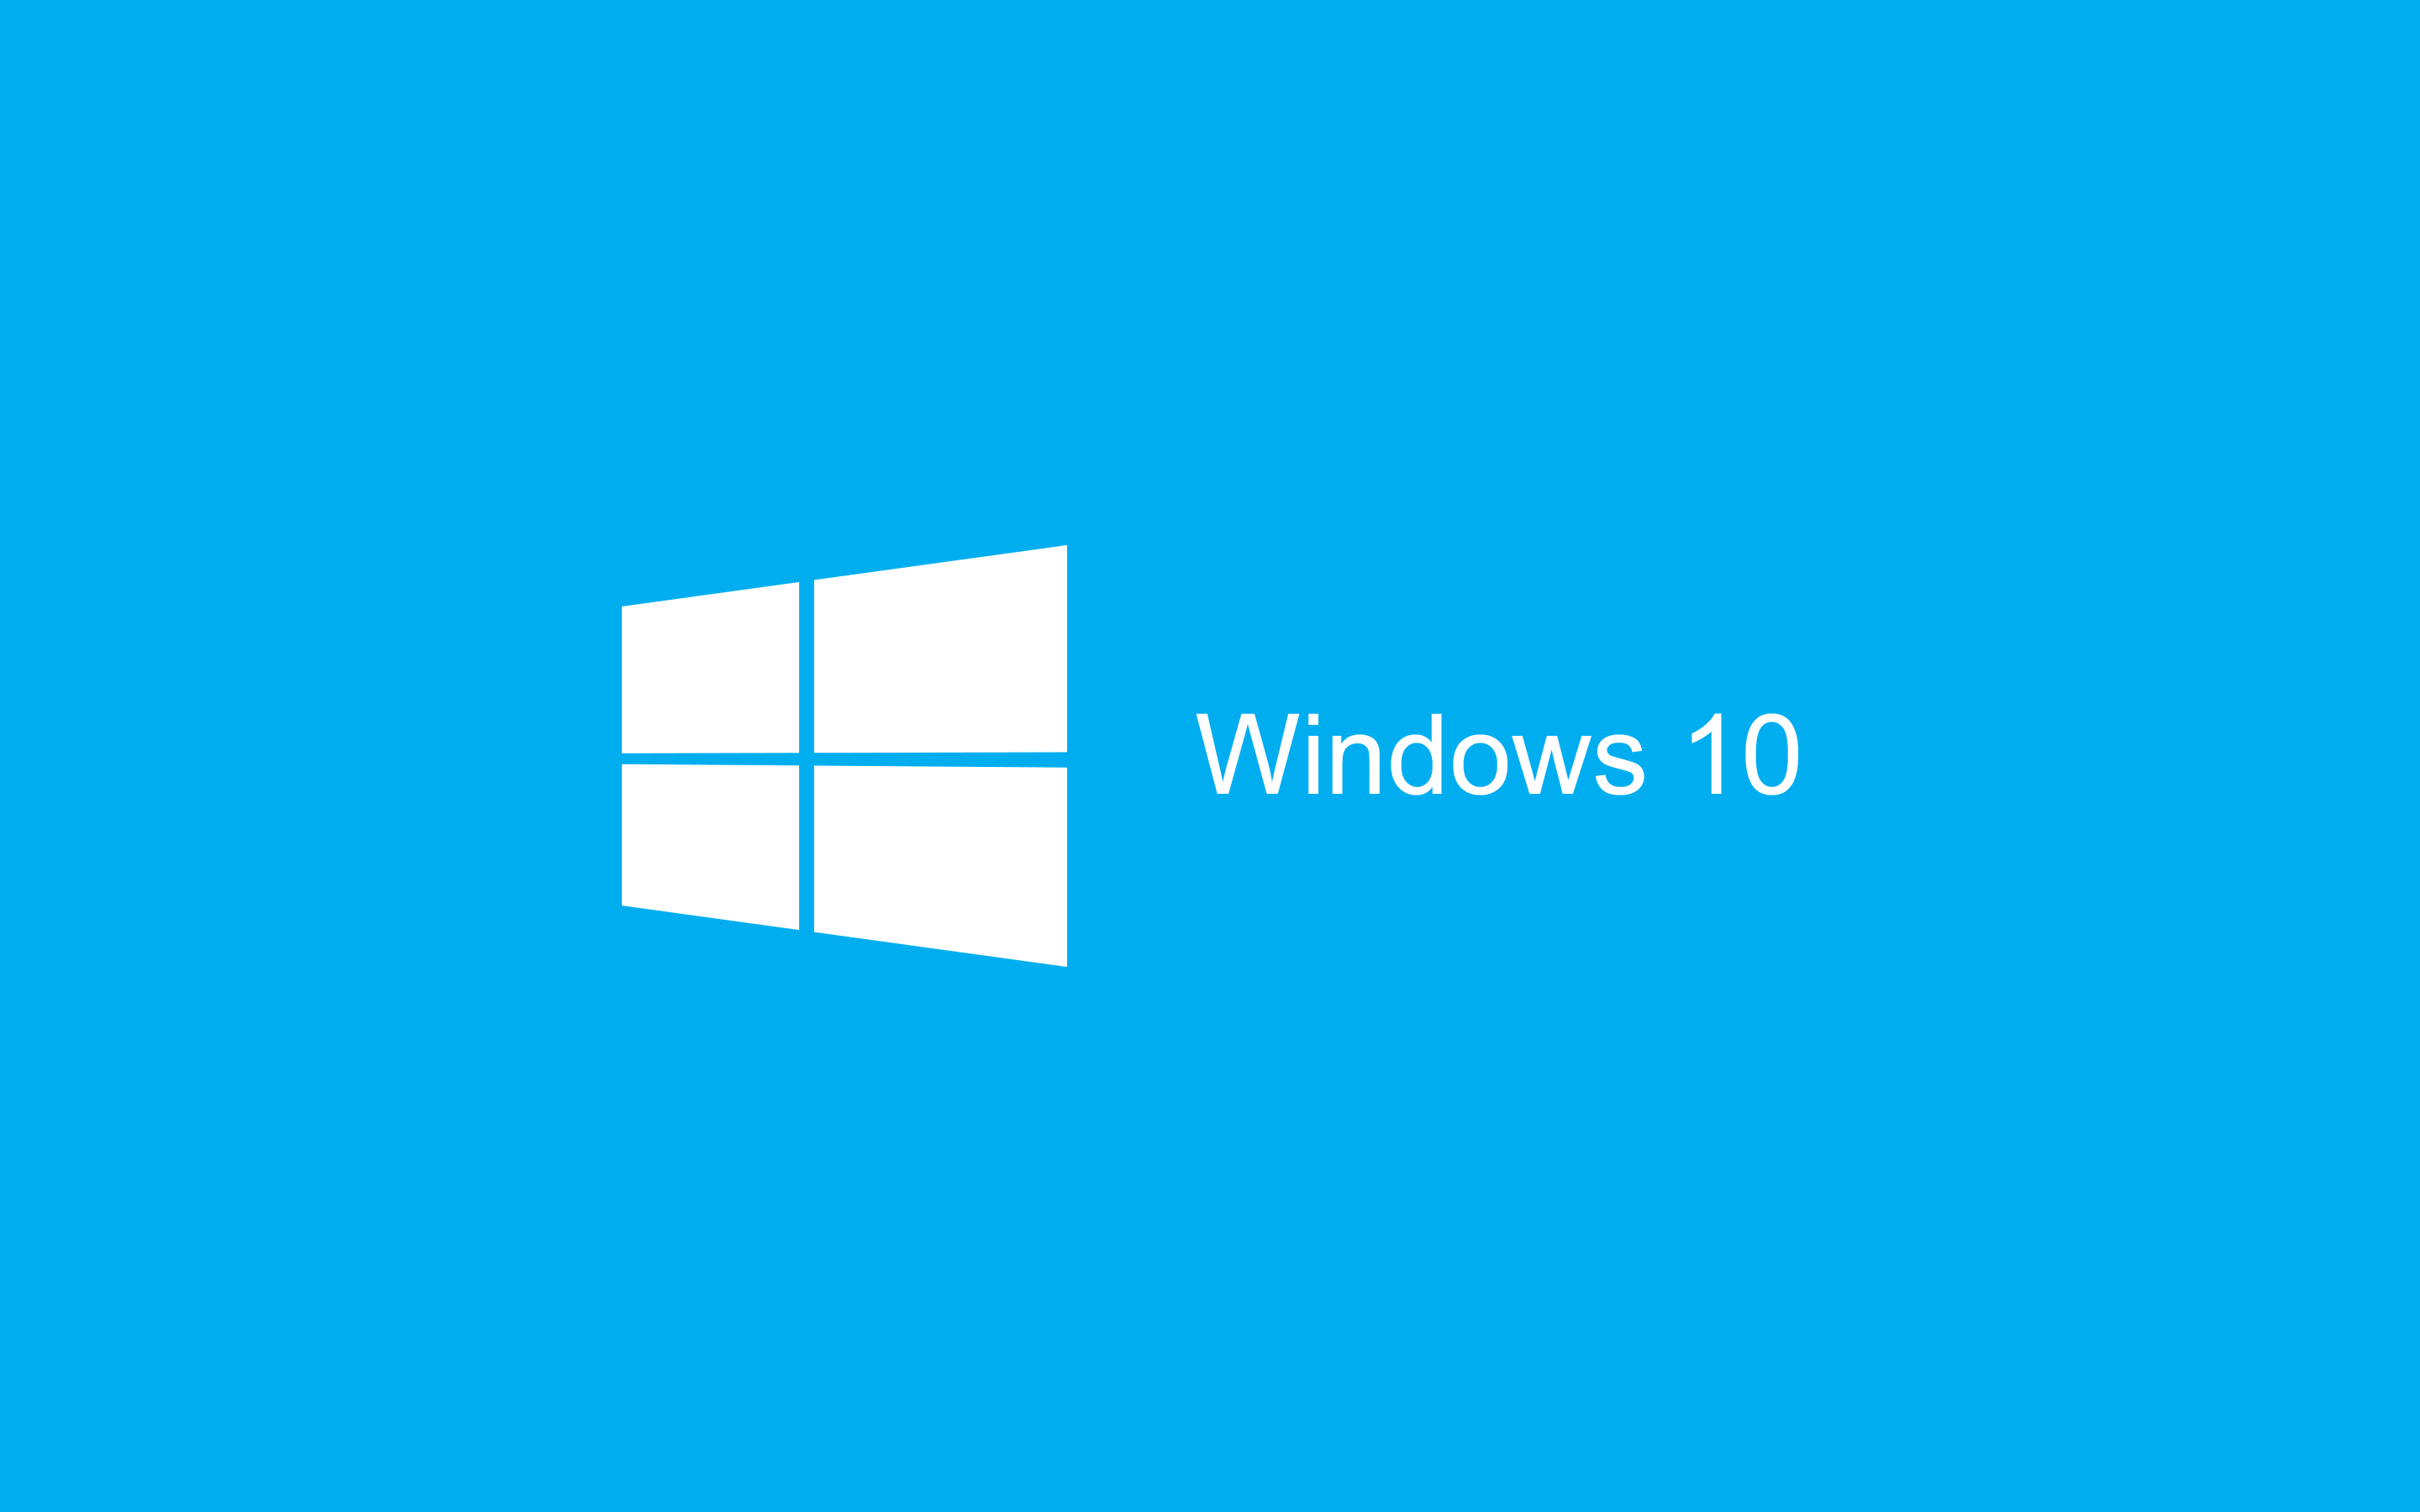 Windows 10, gratuito en 190 países